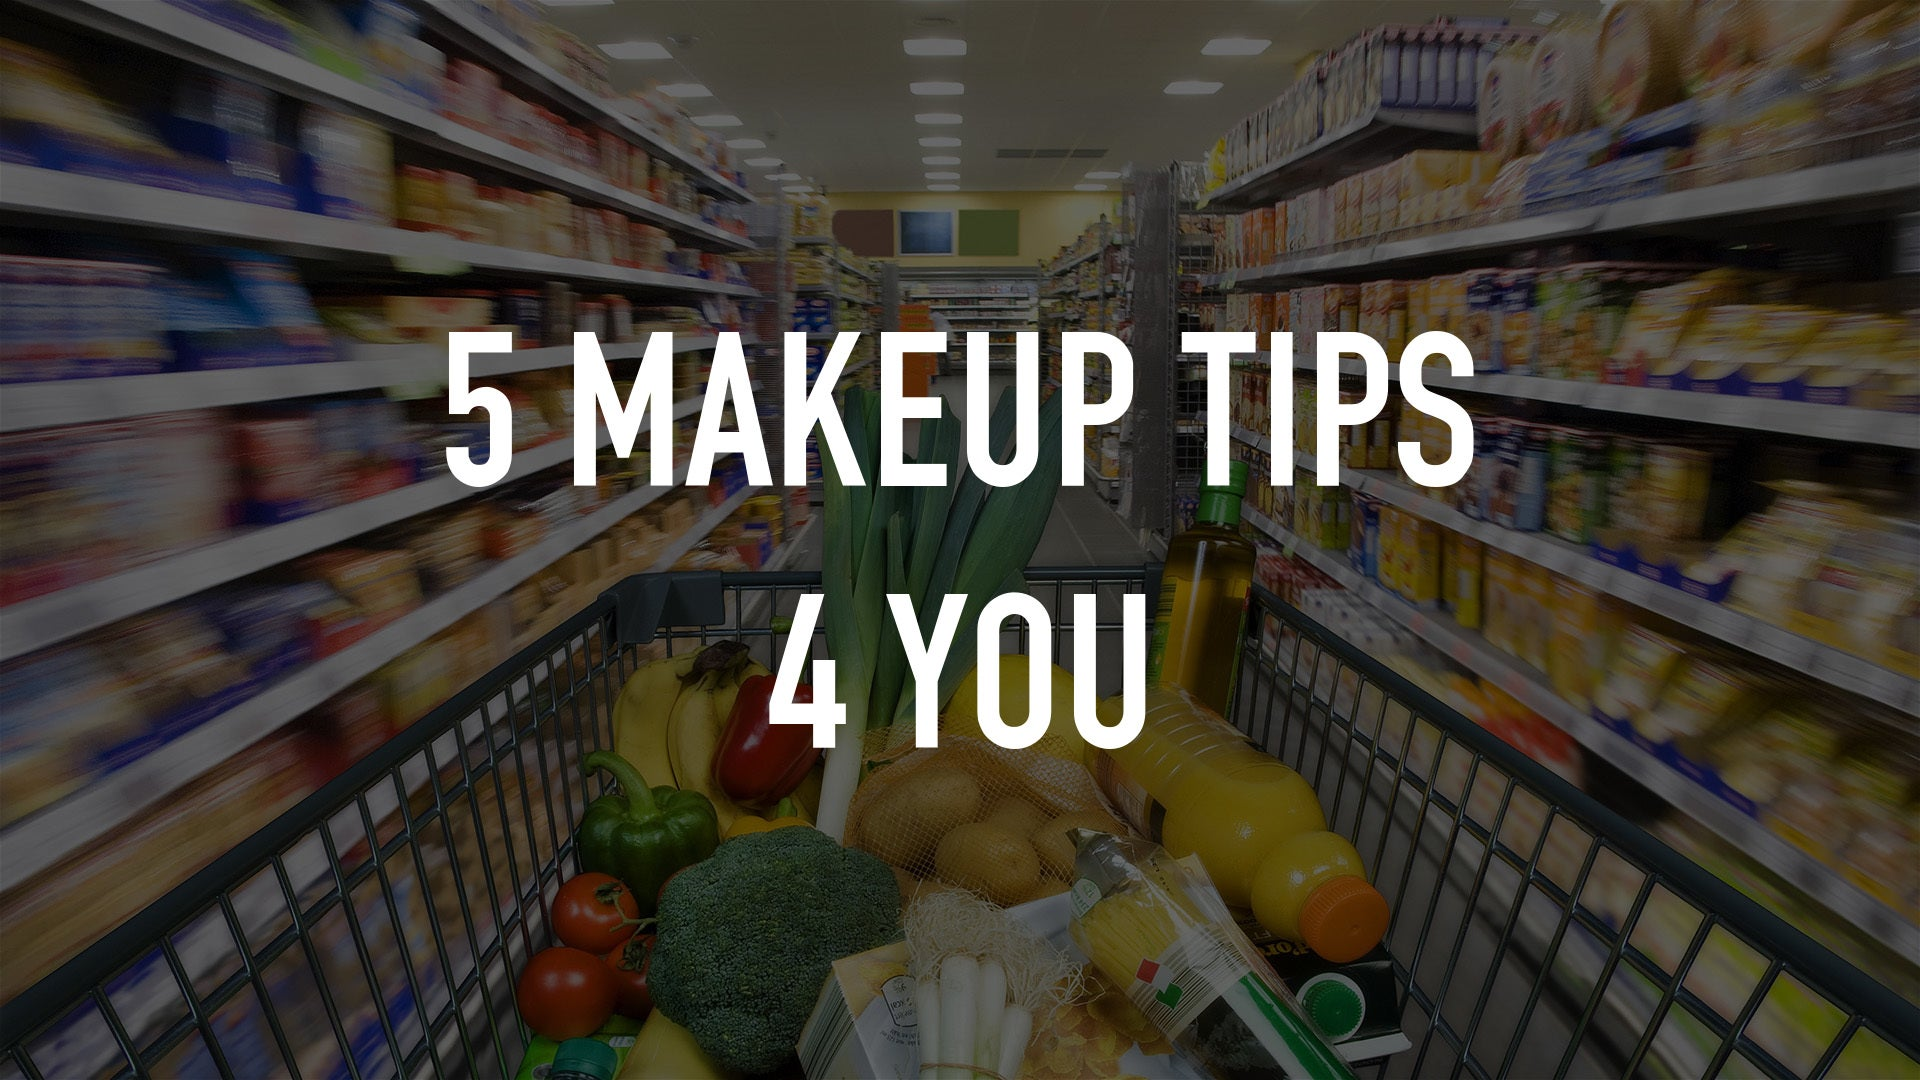 5 Makeup Tips 4 You